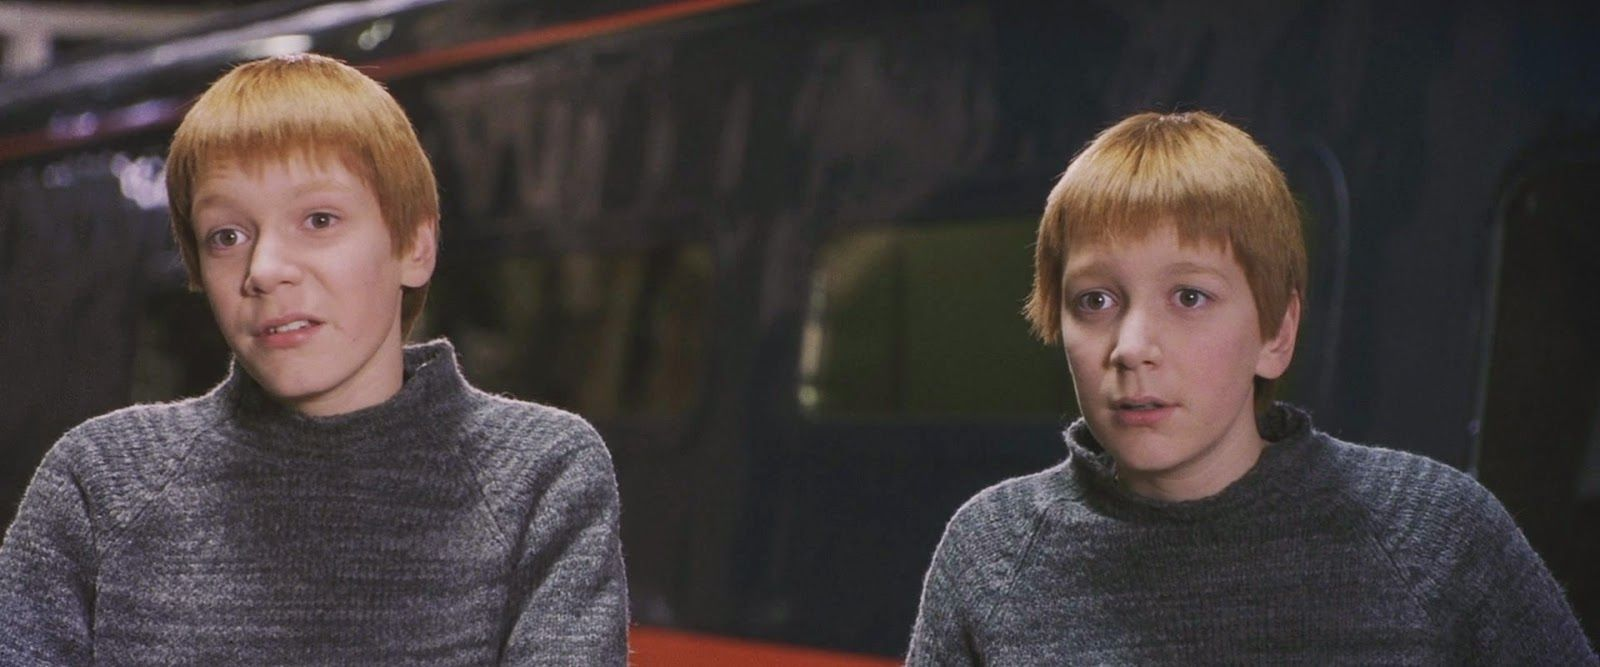 Fred And George Weasley Facts Fred And George Weasley George Weasley Harry Potter Characters